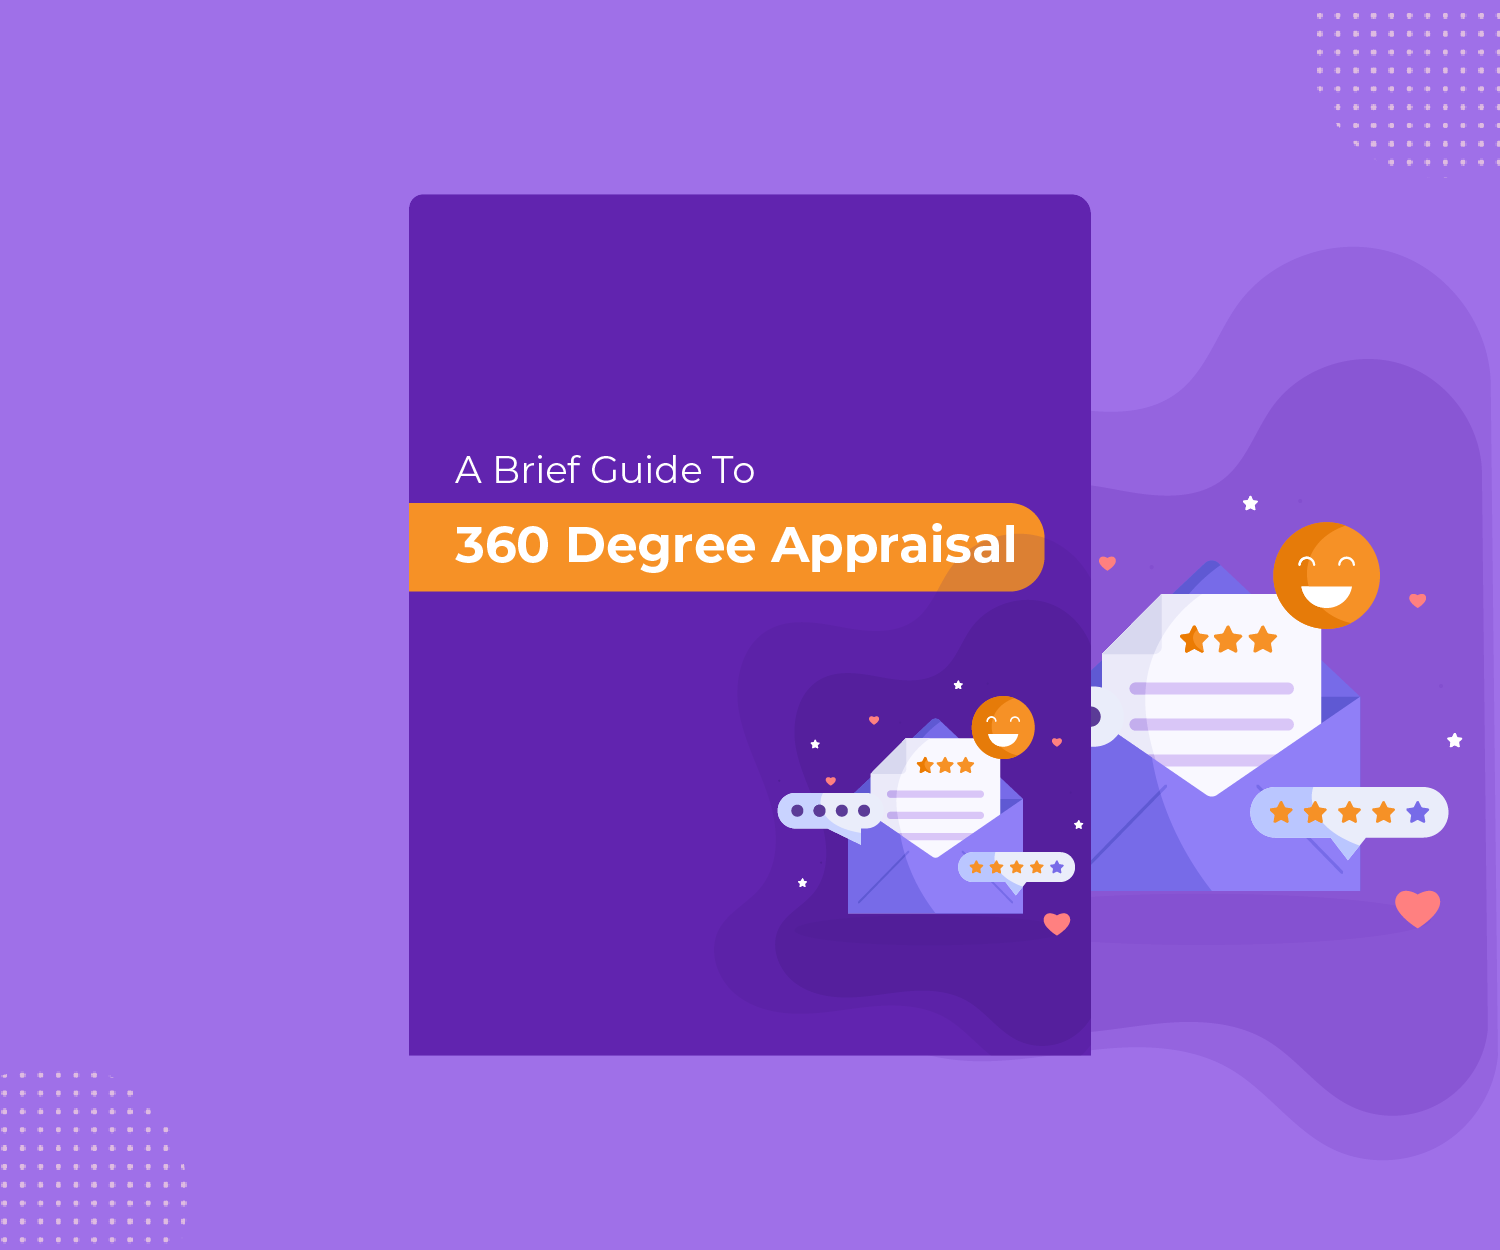 360 Degree Appraisal – A Brief Guide for HRs